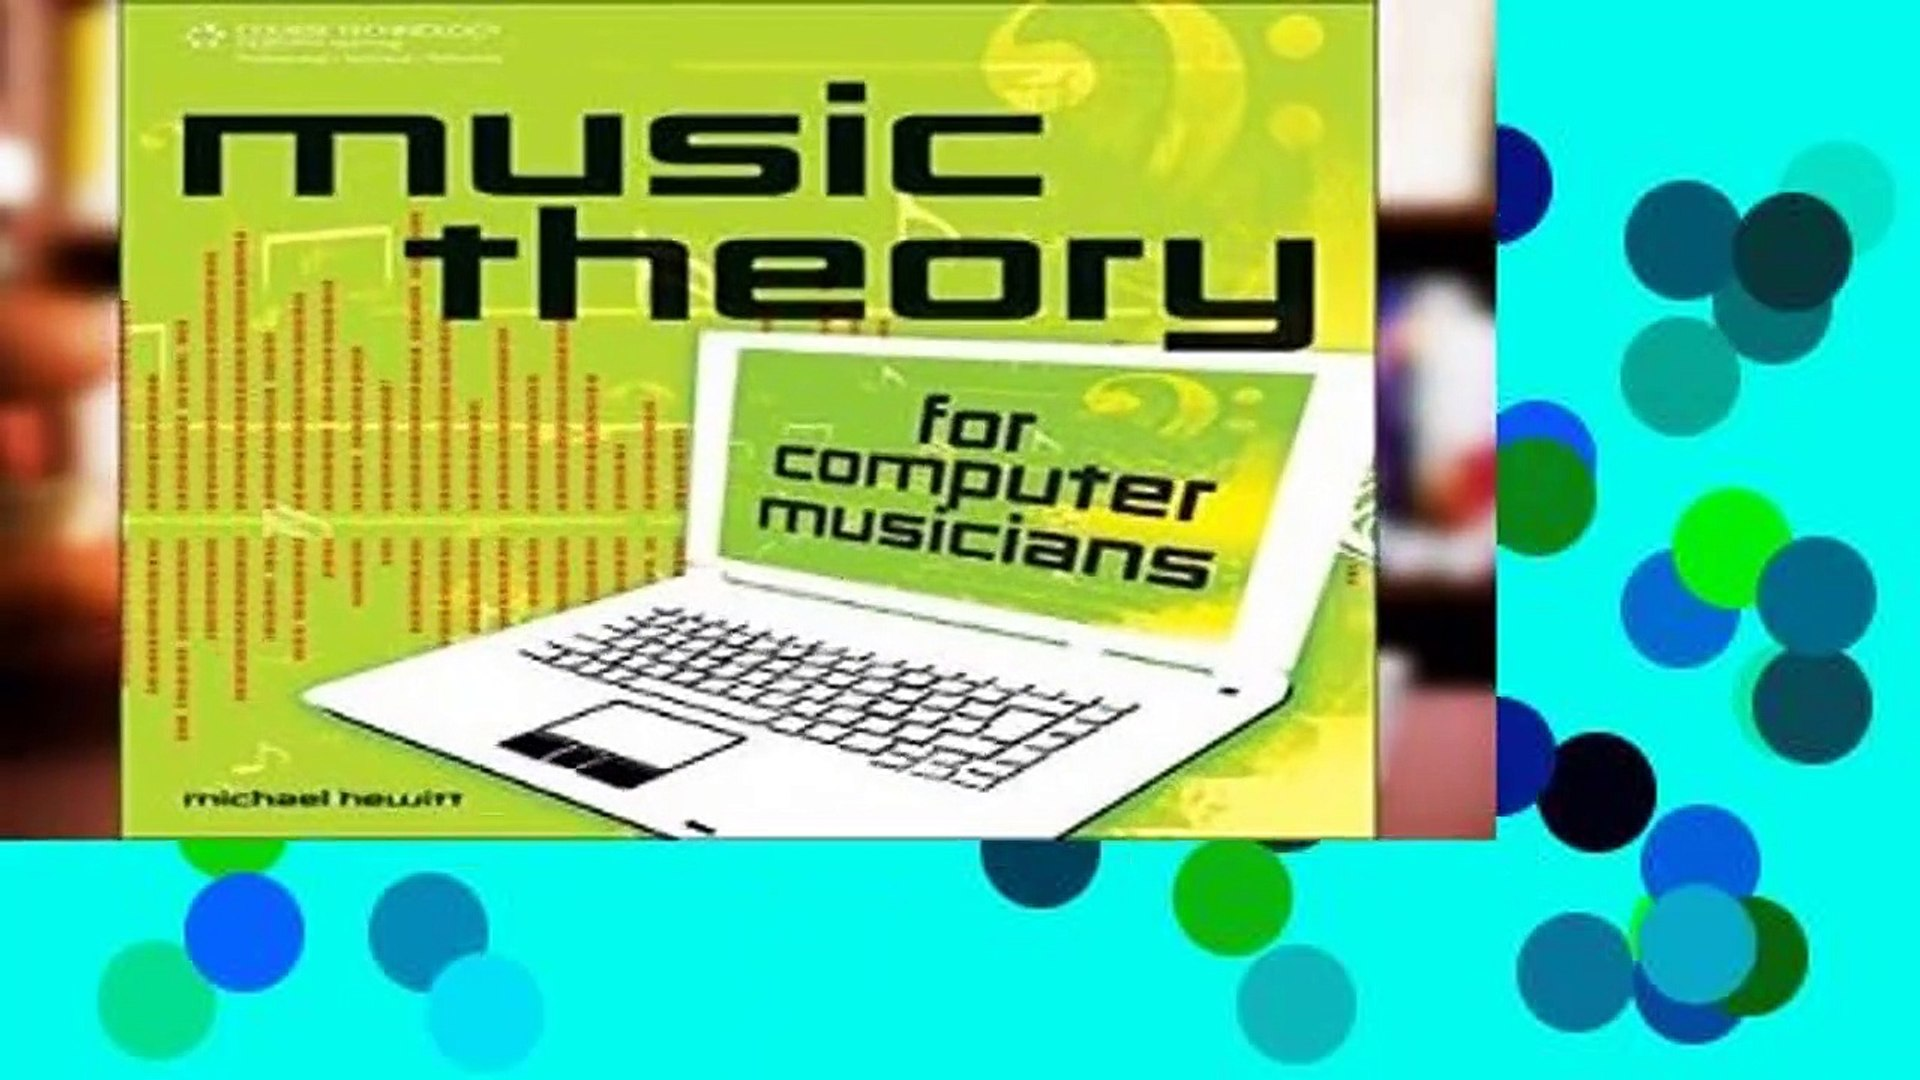 [READ] Music Theory for Computer Musicians